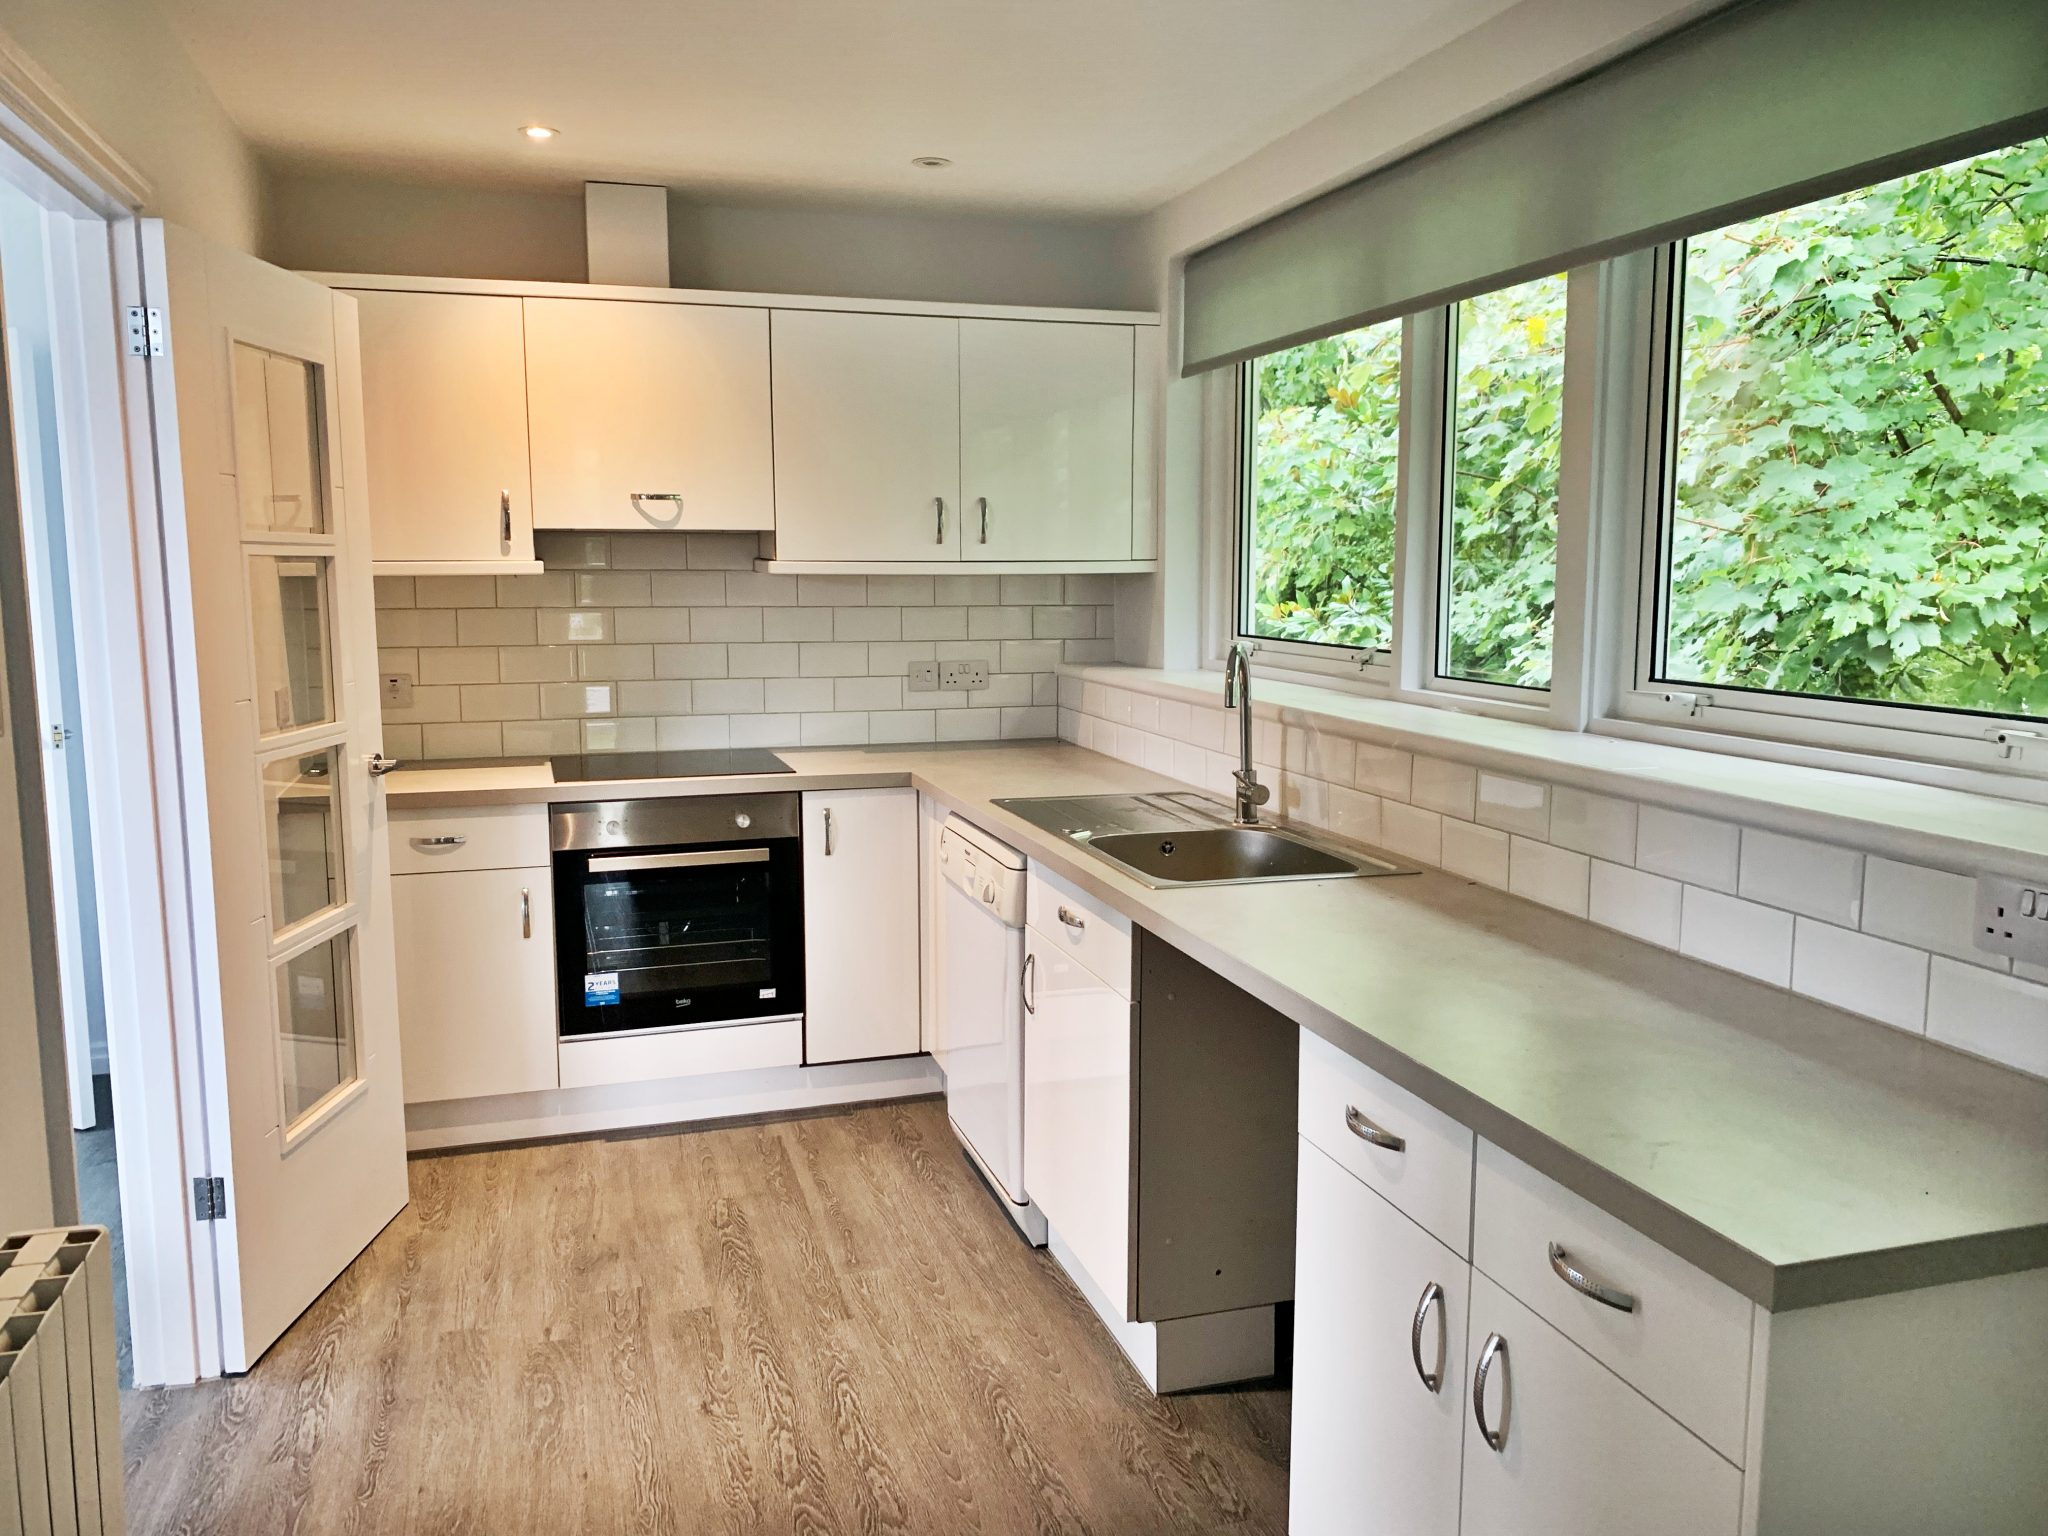 Completely Renovated 2 Bedroom Apartment with Outside Space